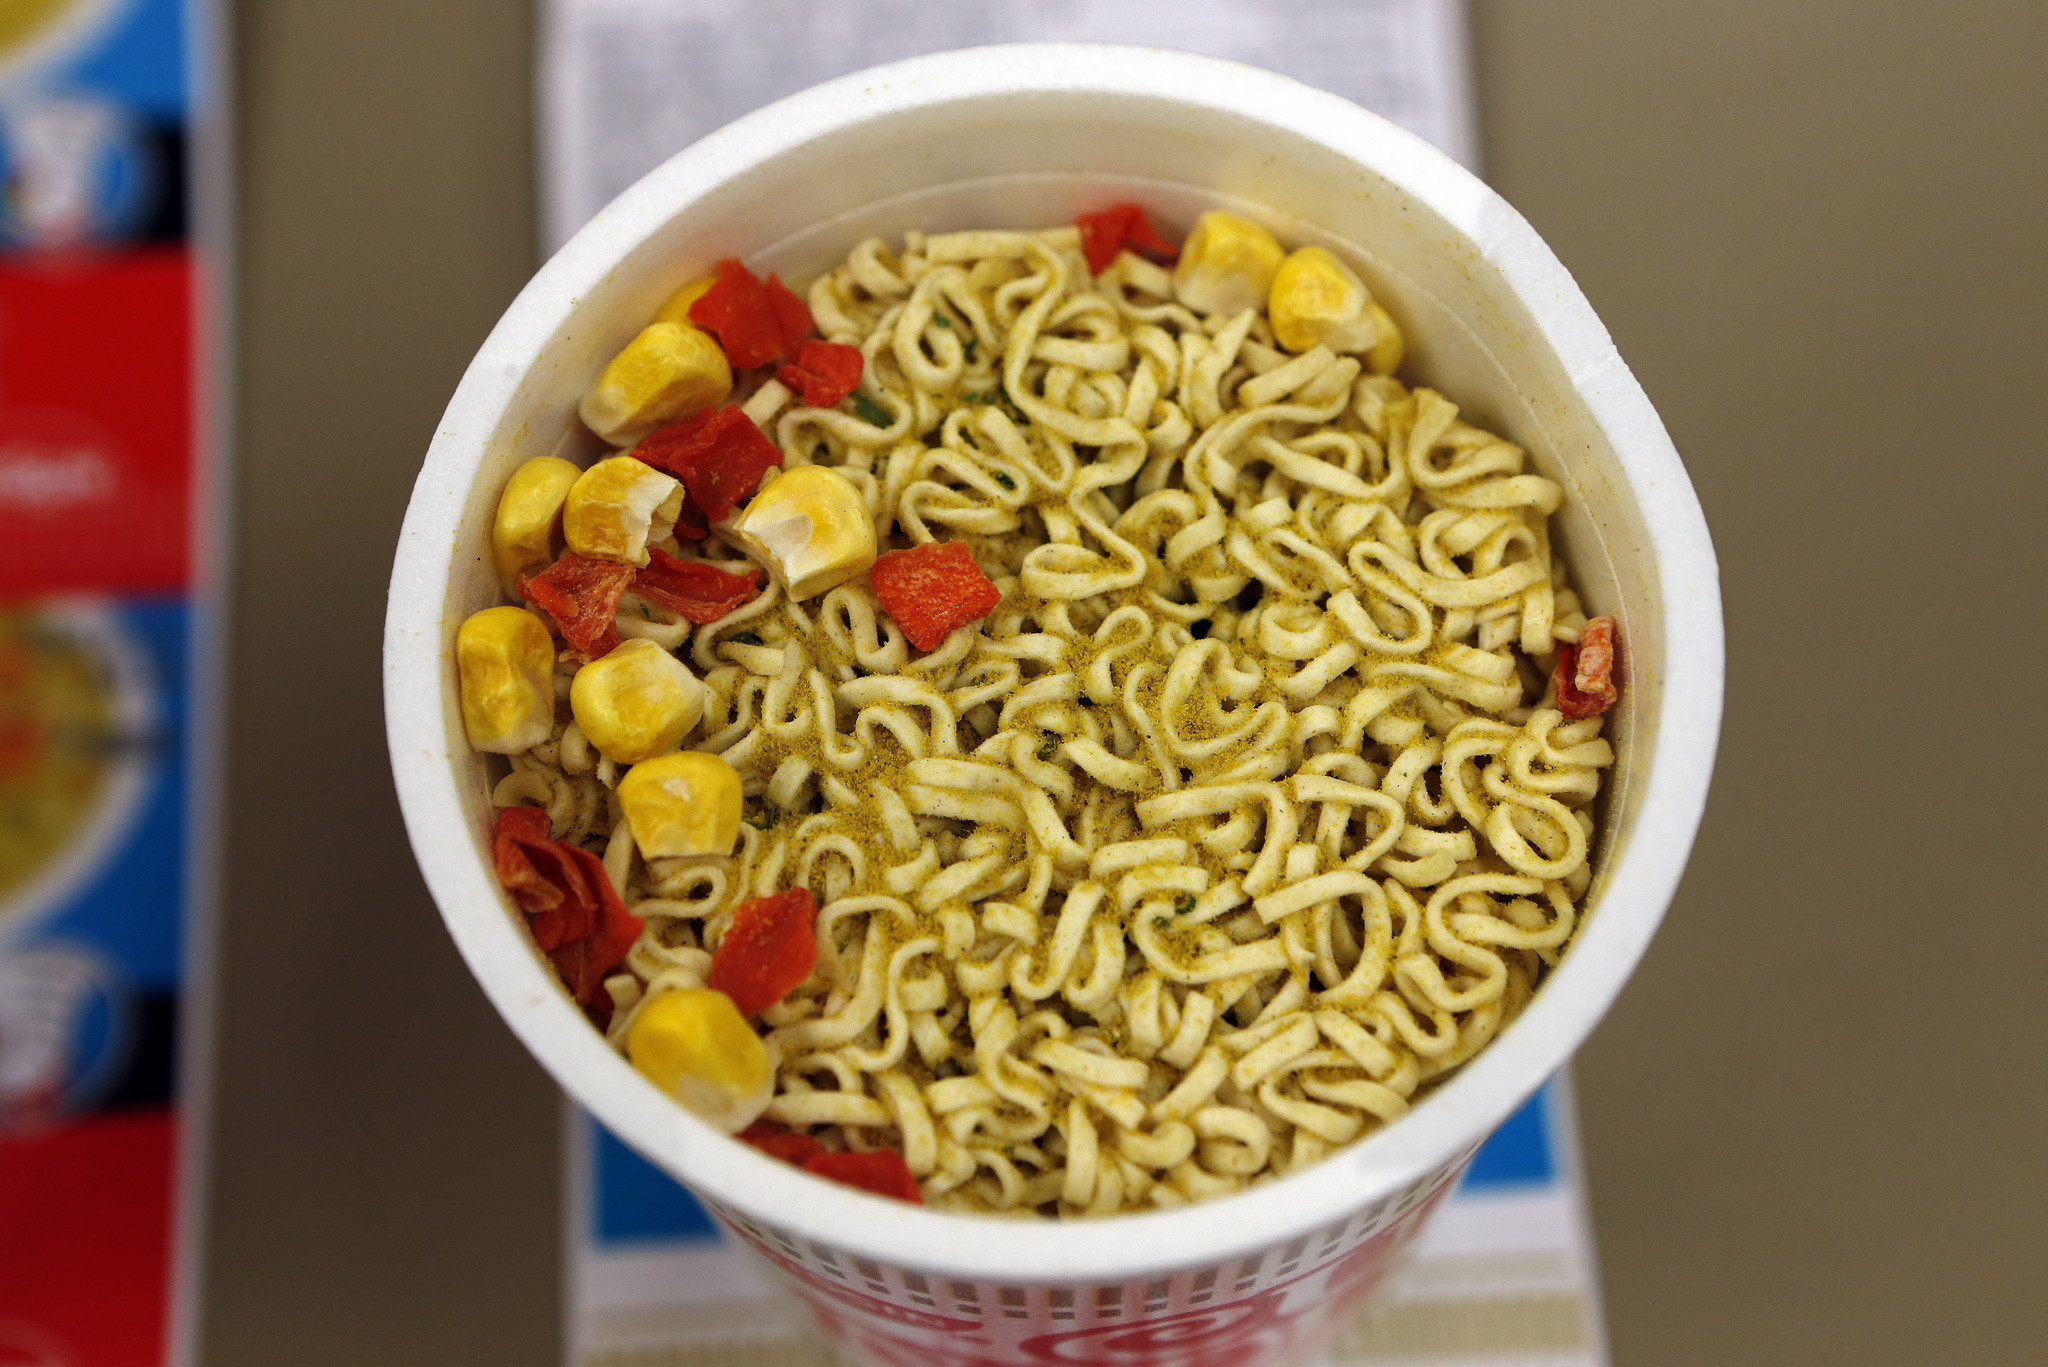 Top Ramen Cup : Cup noodles changes its recipe for the first time ever